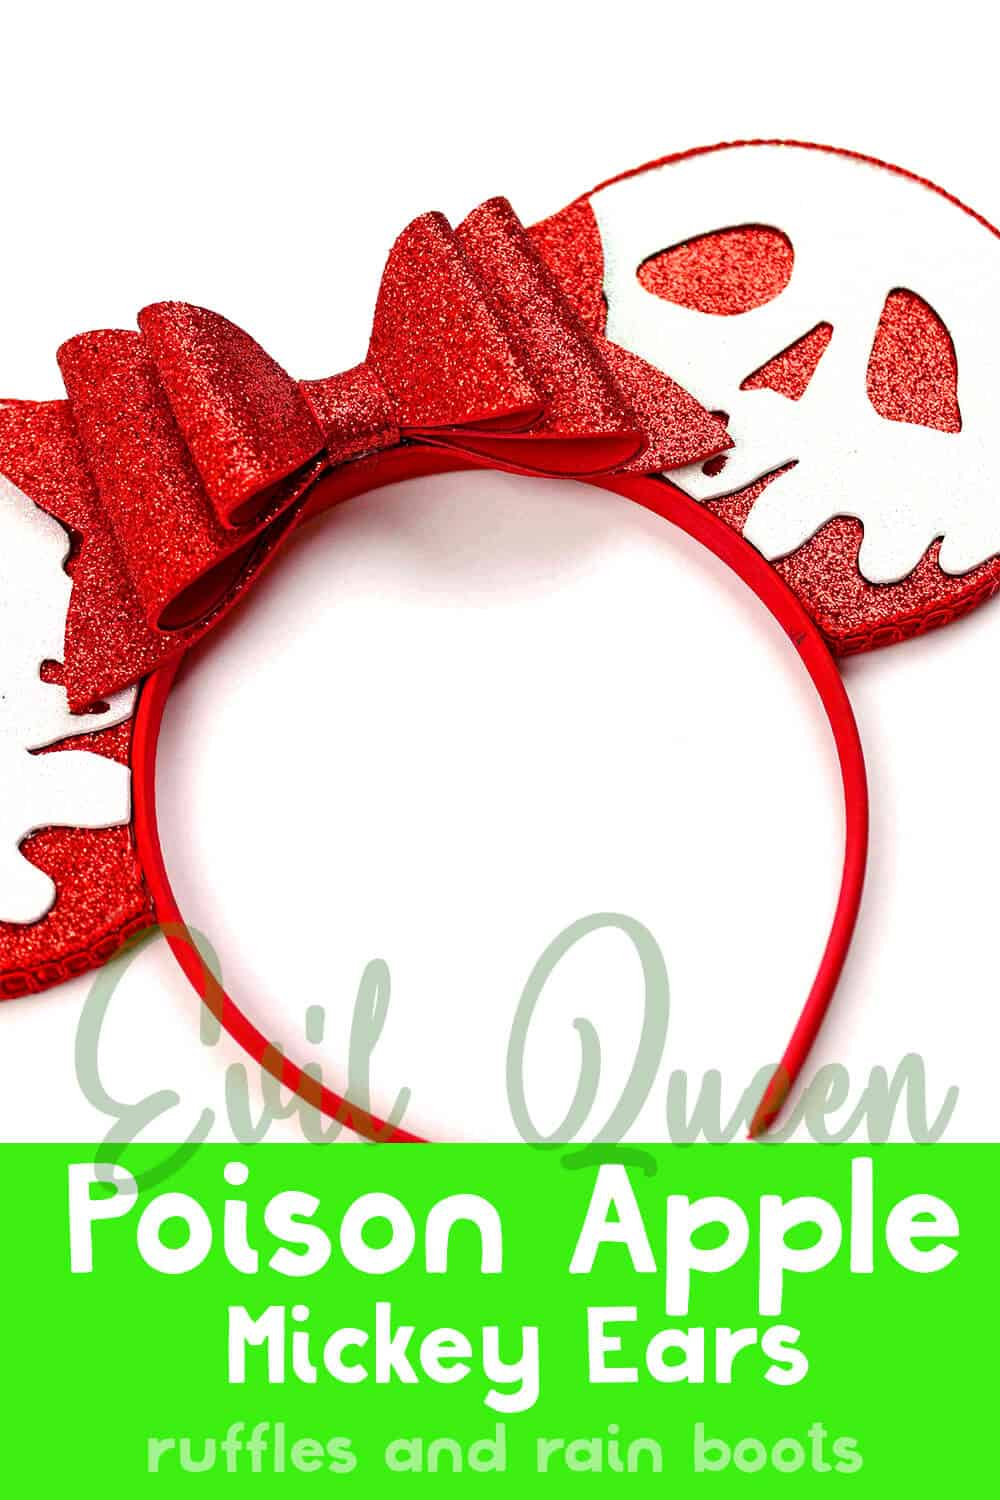 diy poison apple mickey ears on a white background with text which reads evil queen poison apple mickey ears